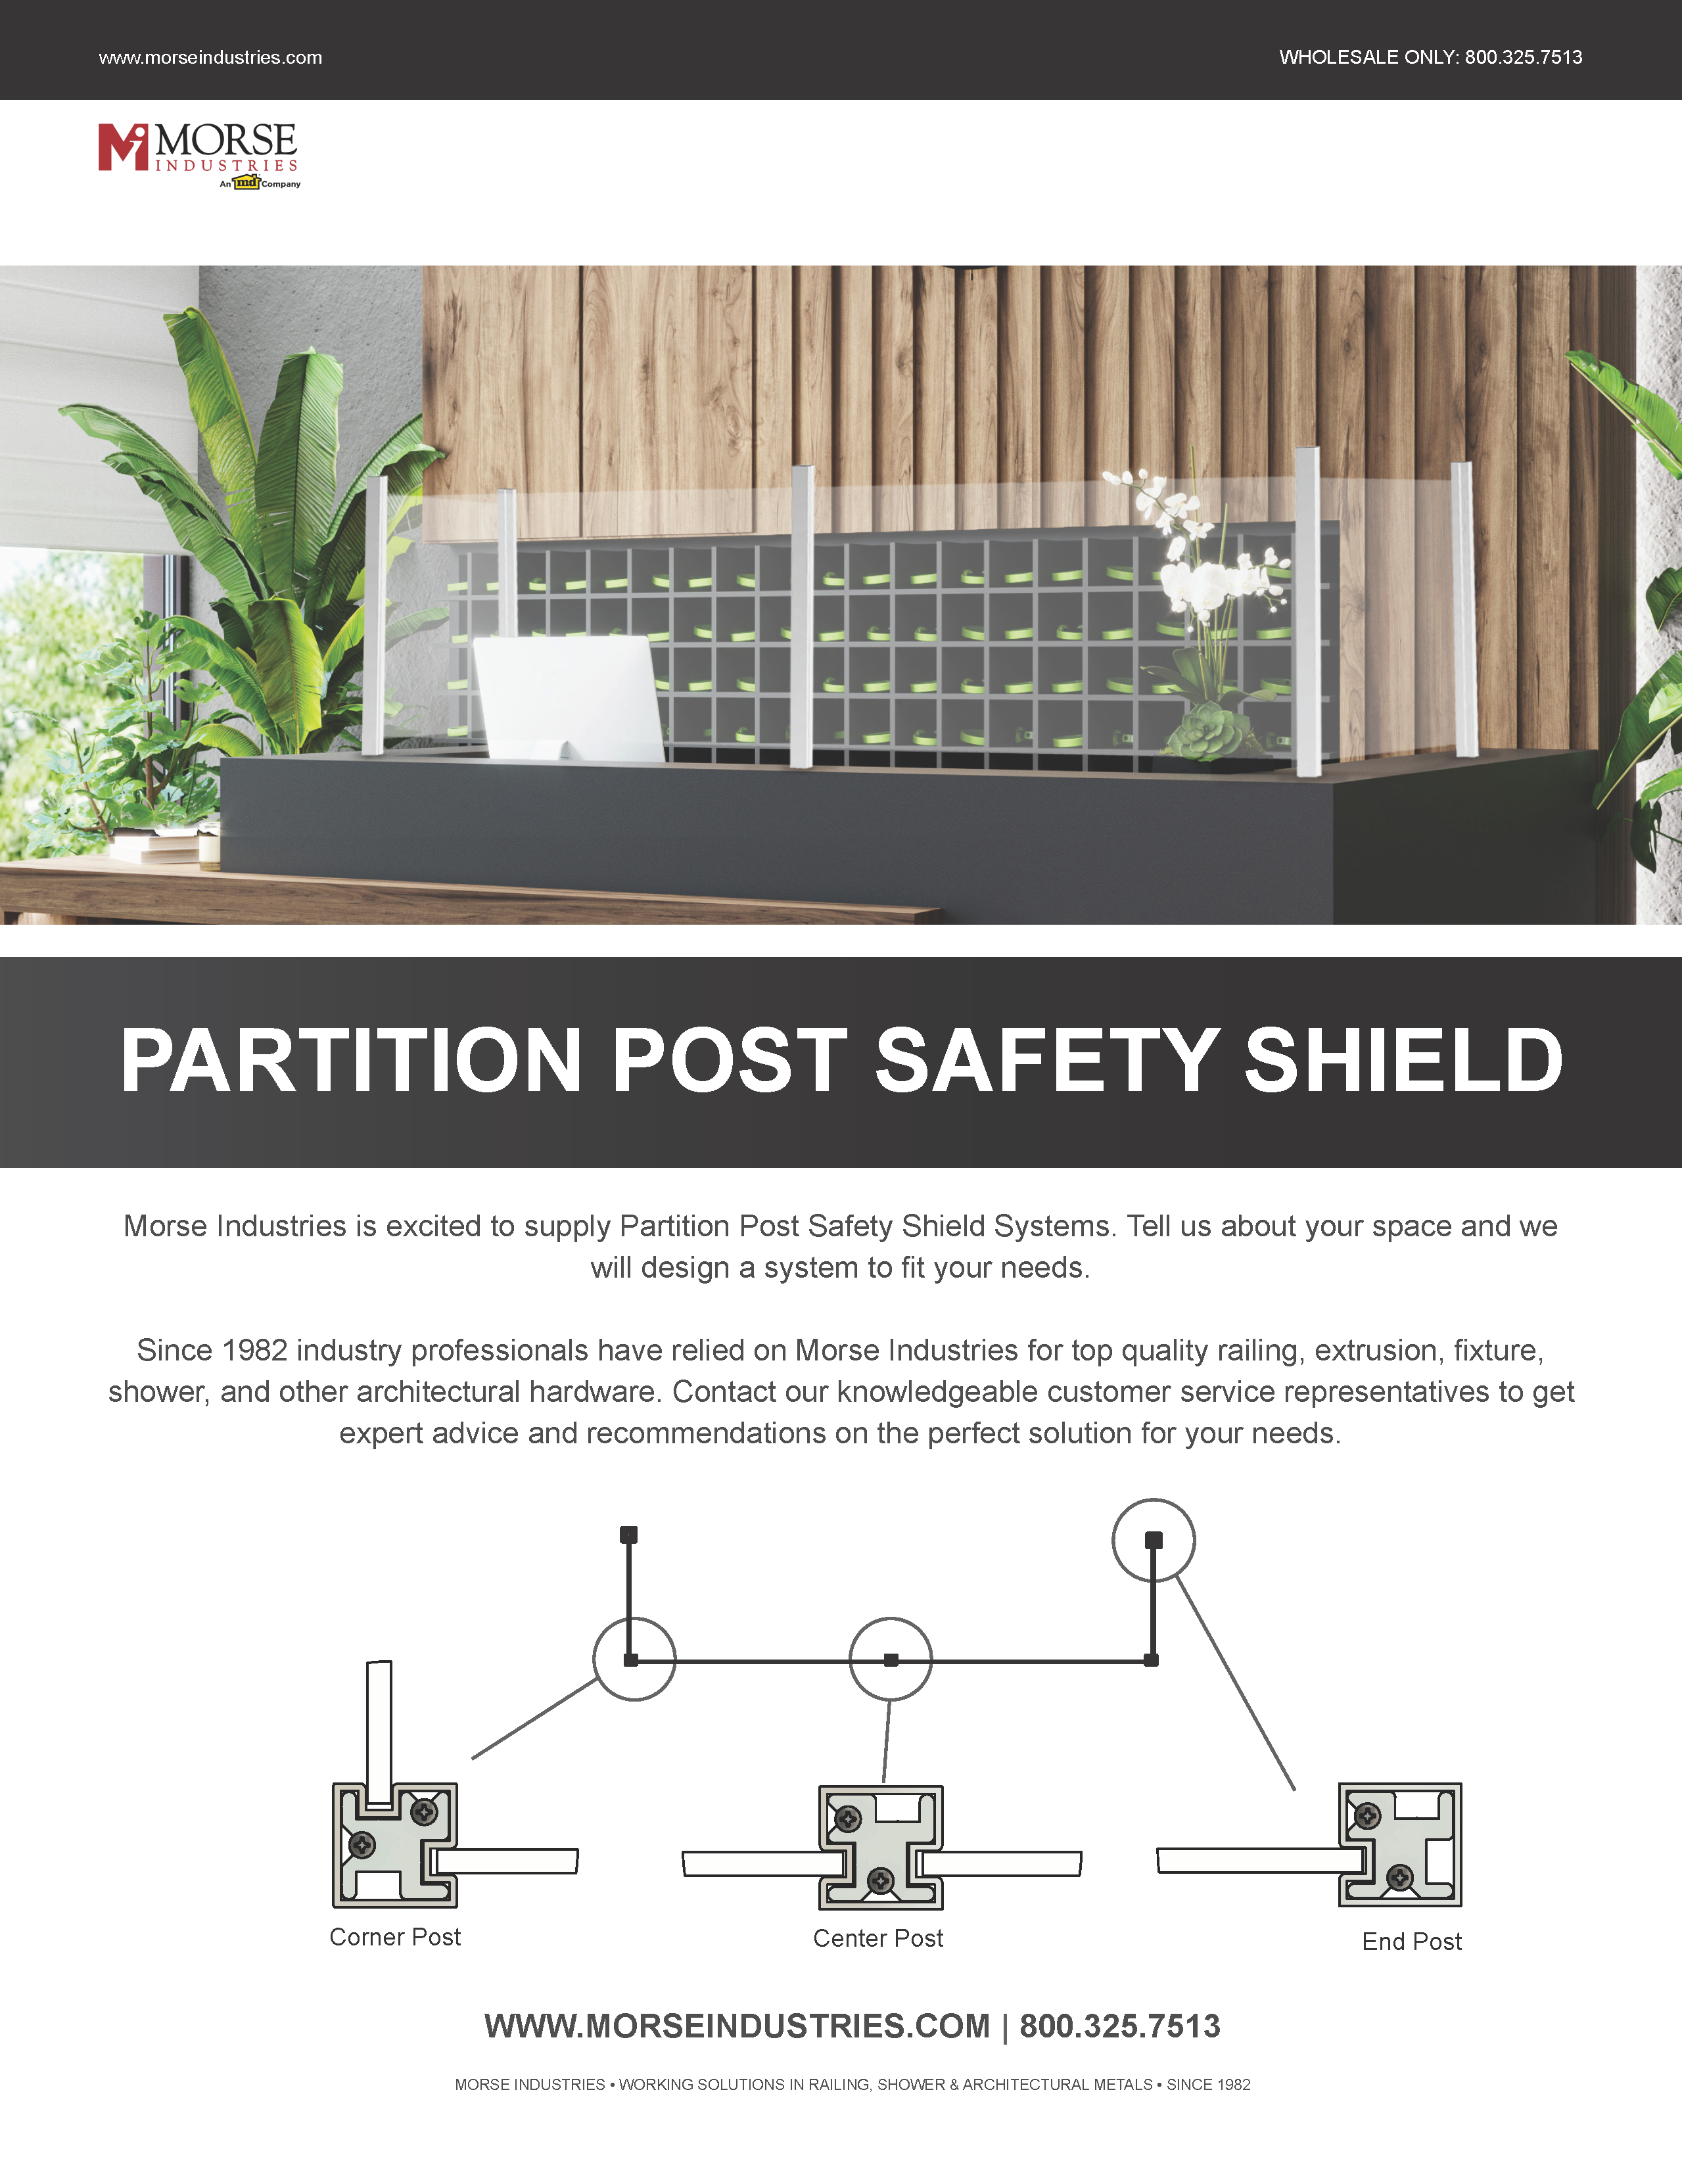 Partition Post Safety Shield